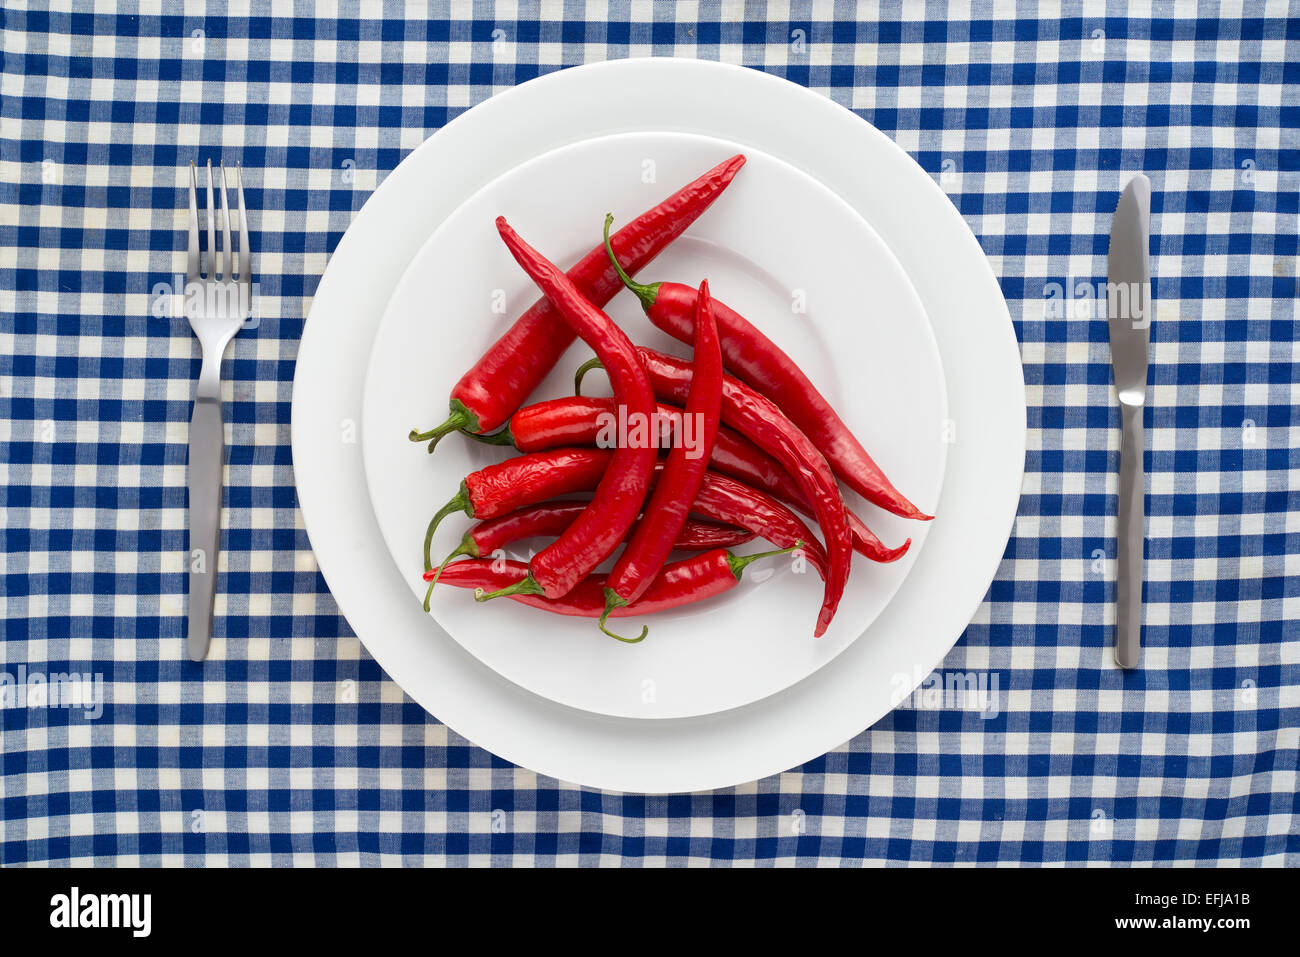 Red Chilli Peppers On A Checkered Tablecloth   Stock Image